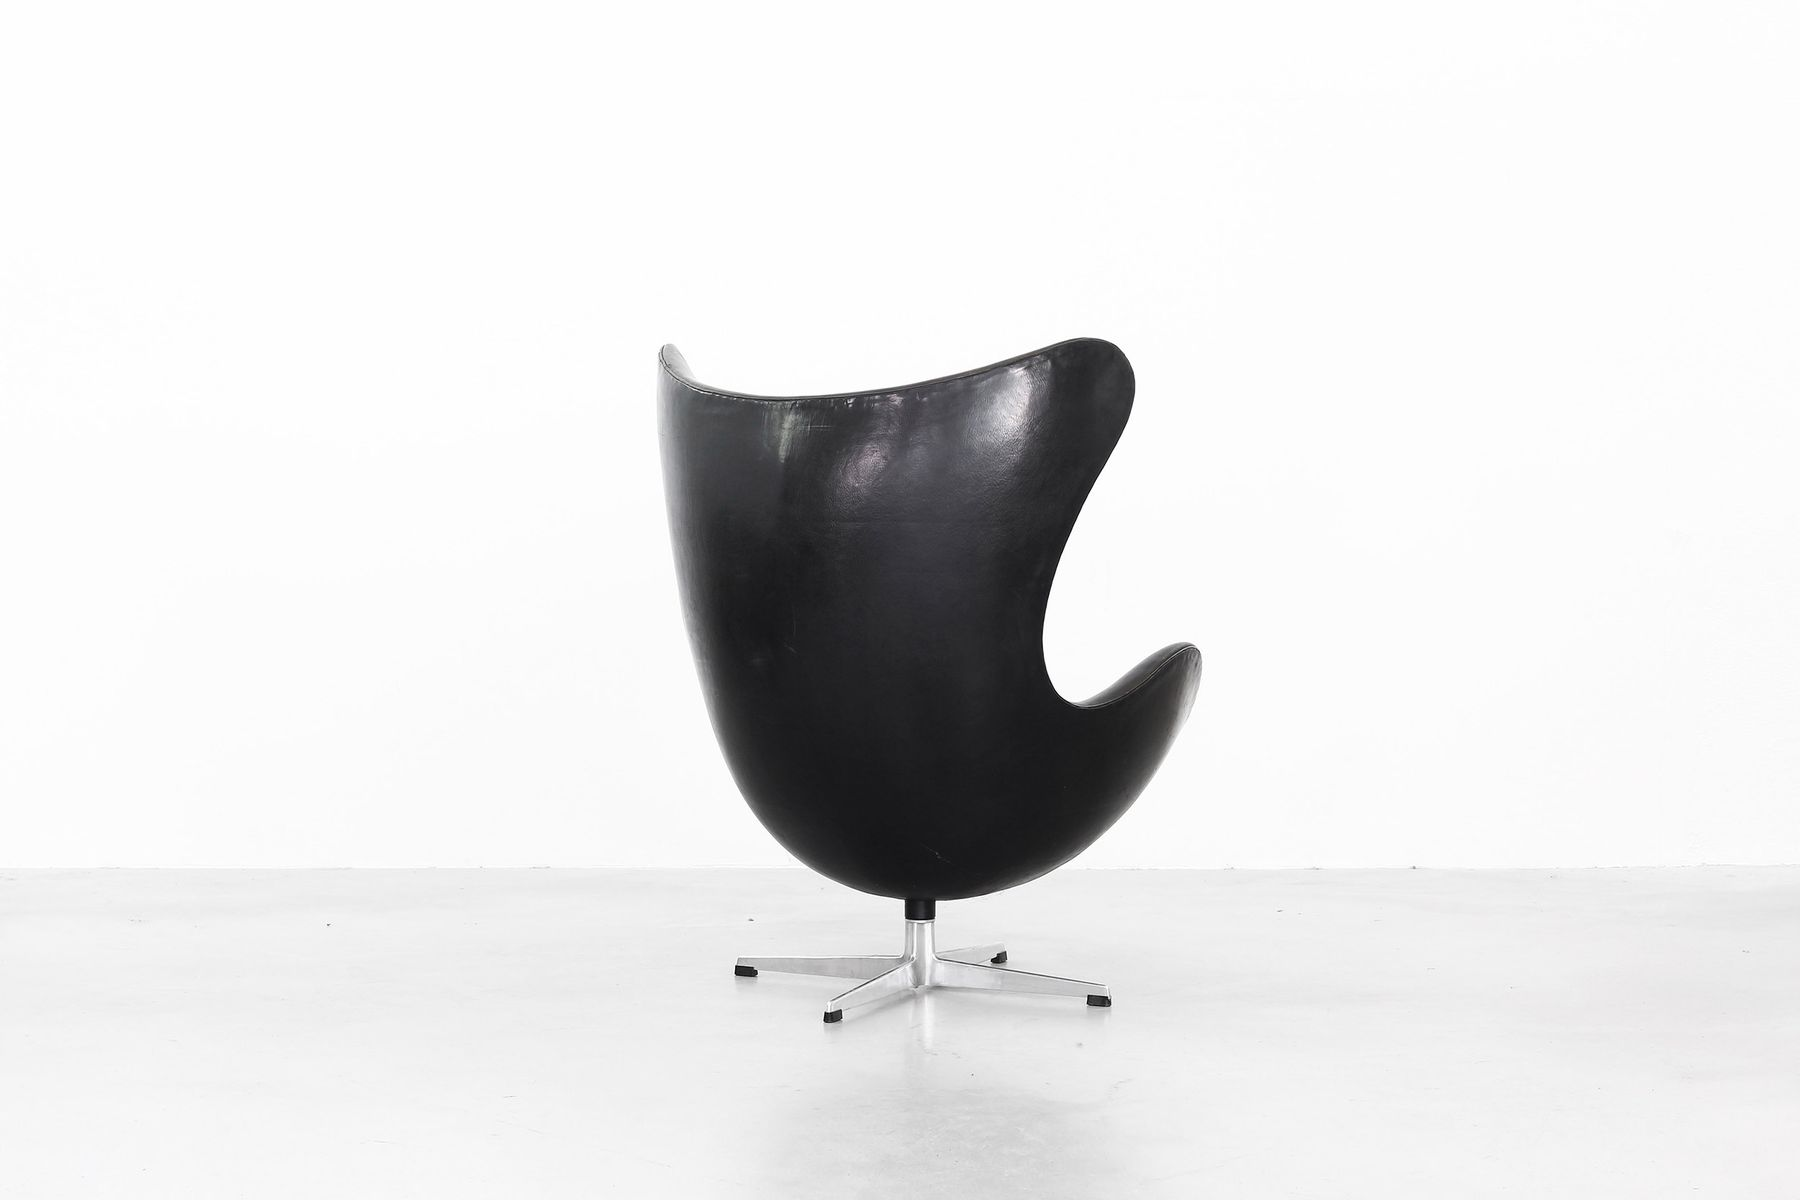 vintage egg chair fisher price space saver high replacement cover by arne jacobsen for fritz hansen 1963